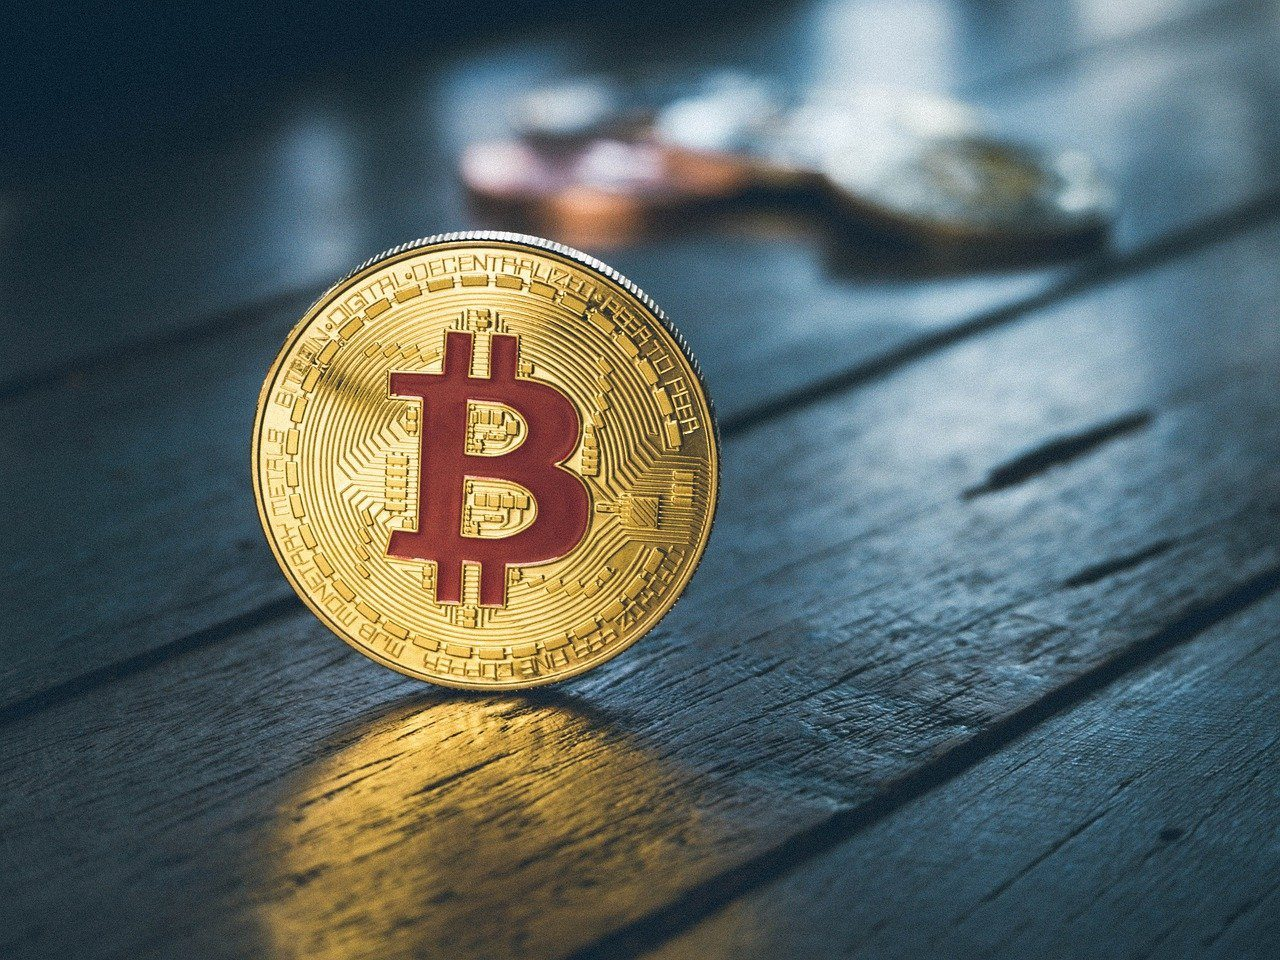 Bitcoin Price Could Move to $400,000 As Adoption Grows, Analysts Suggest